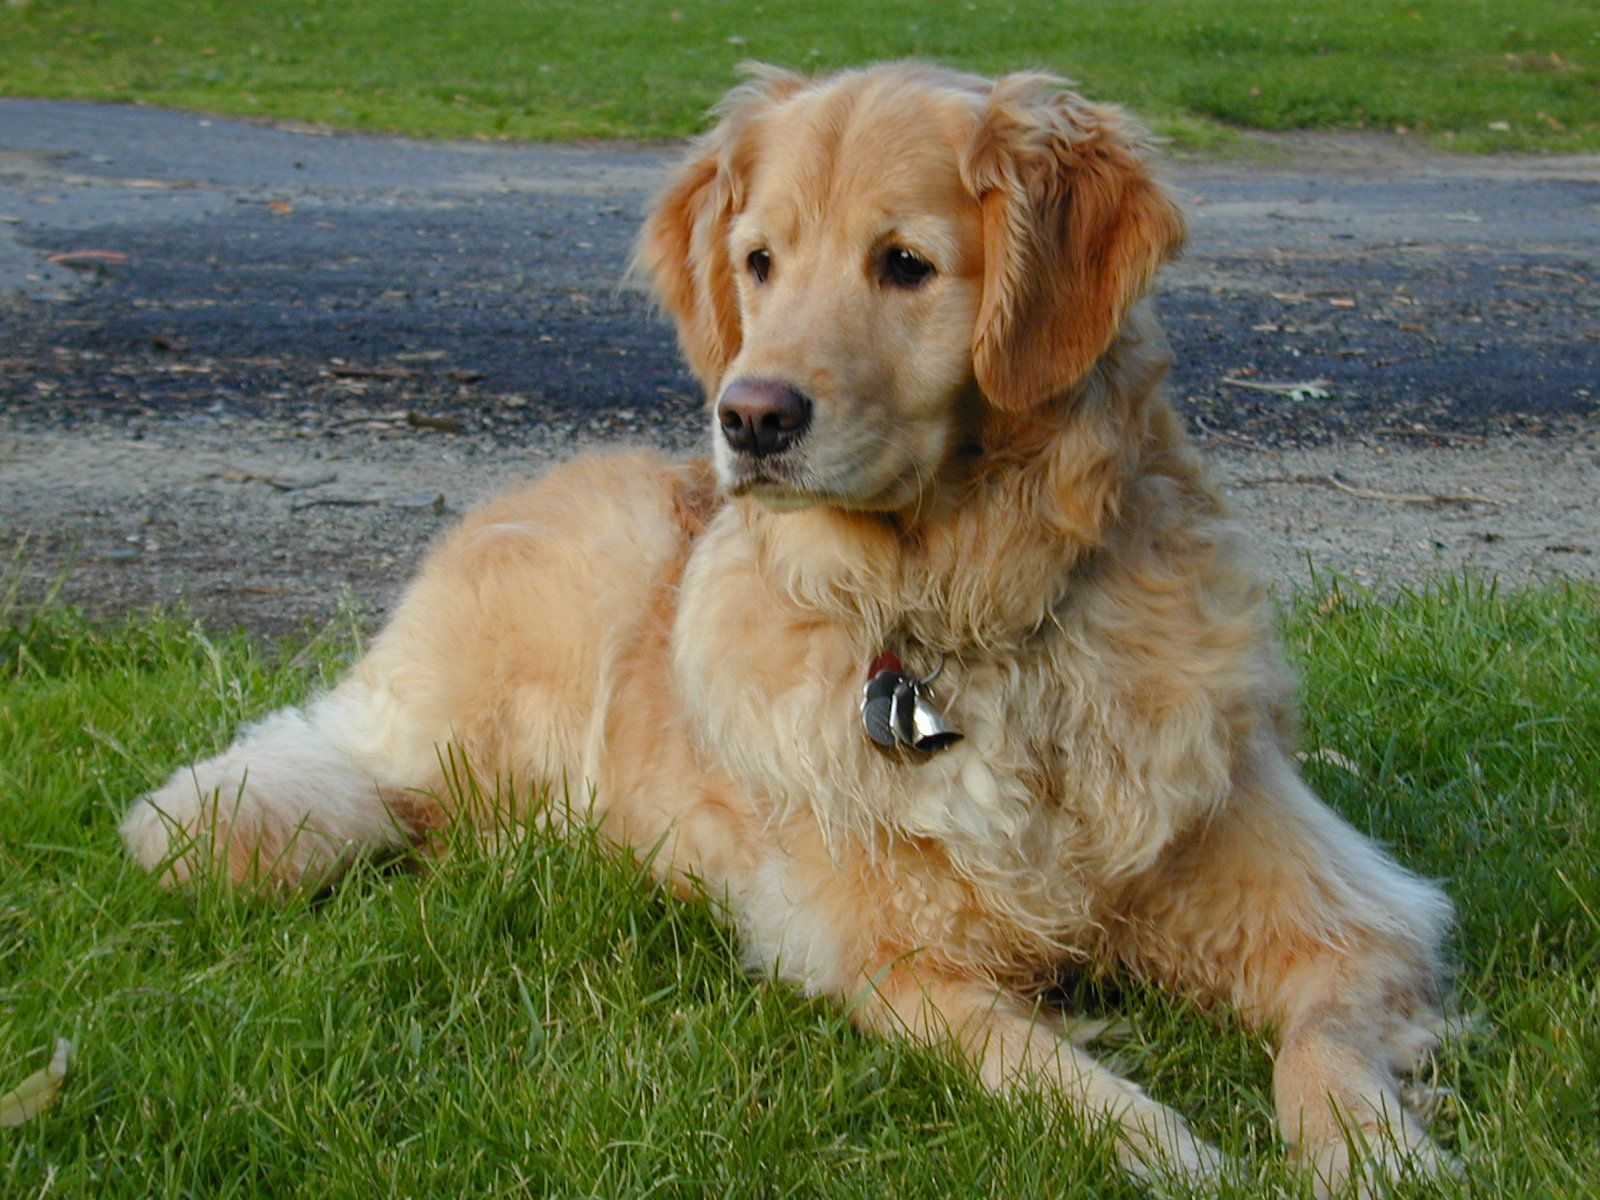 Golden Retriever Pics Of Our Dog Jesse A Very Talented And